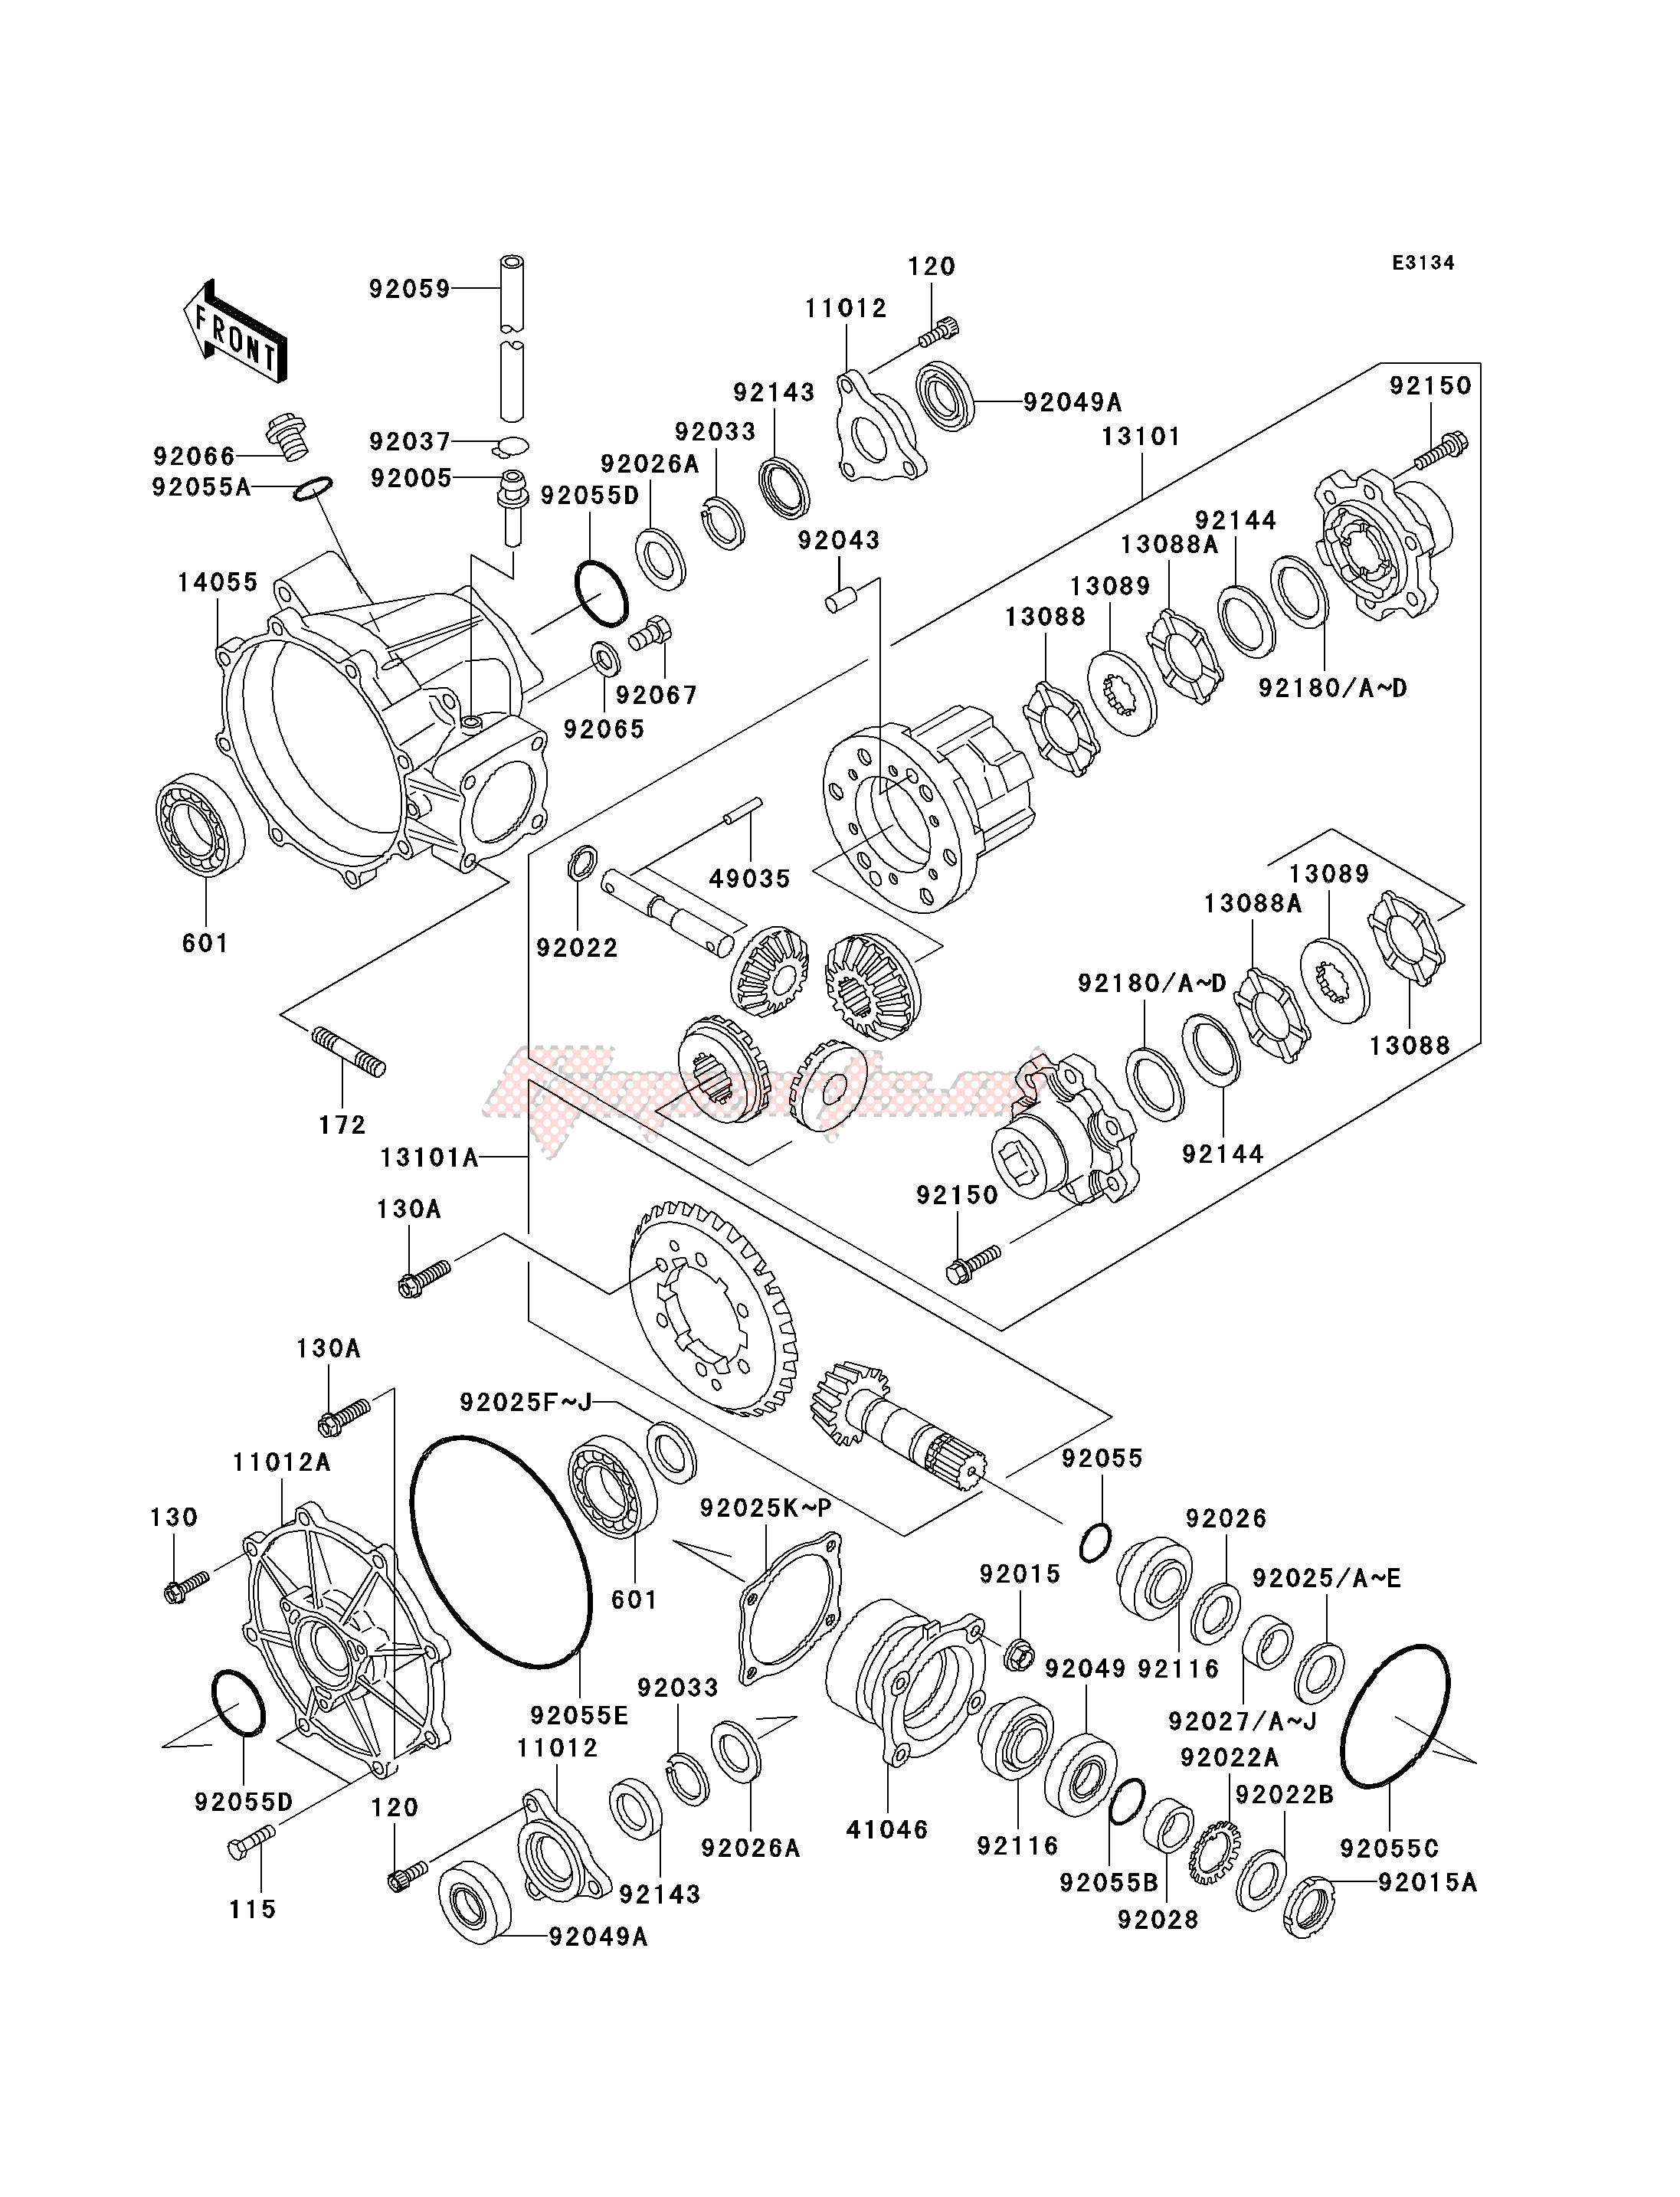 Frame-DRIVE SHAFT -- DIFFERENTIAL- -